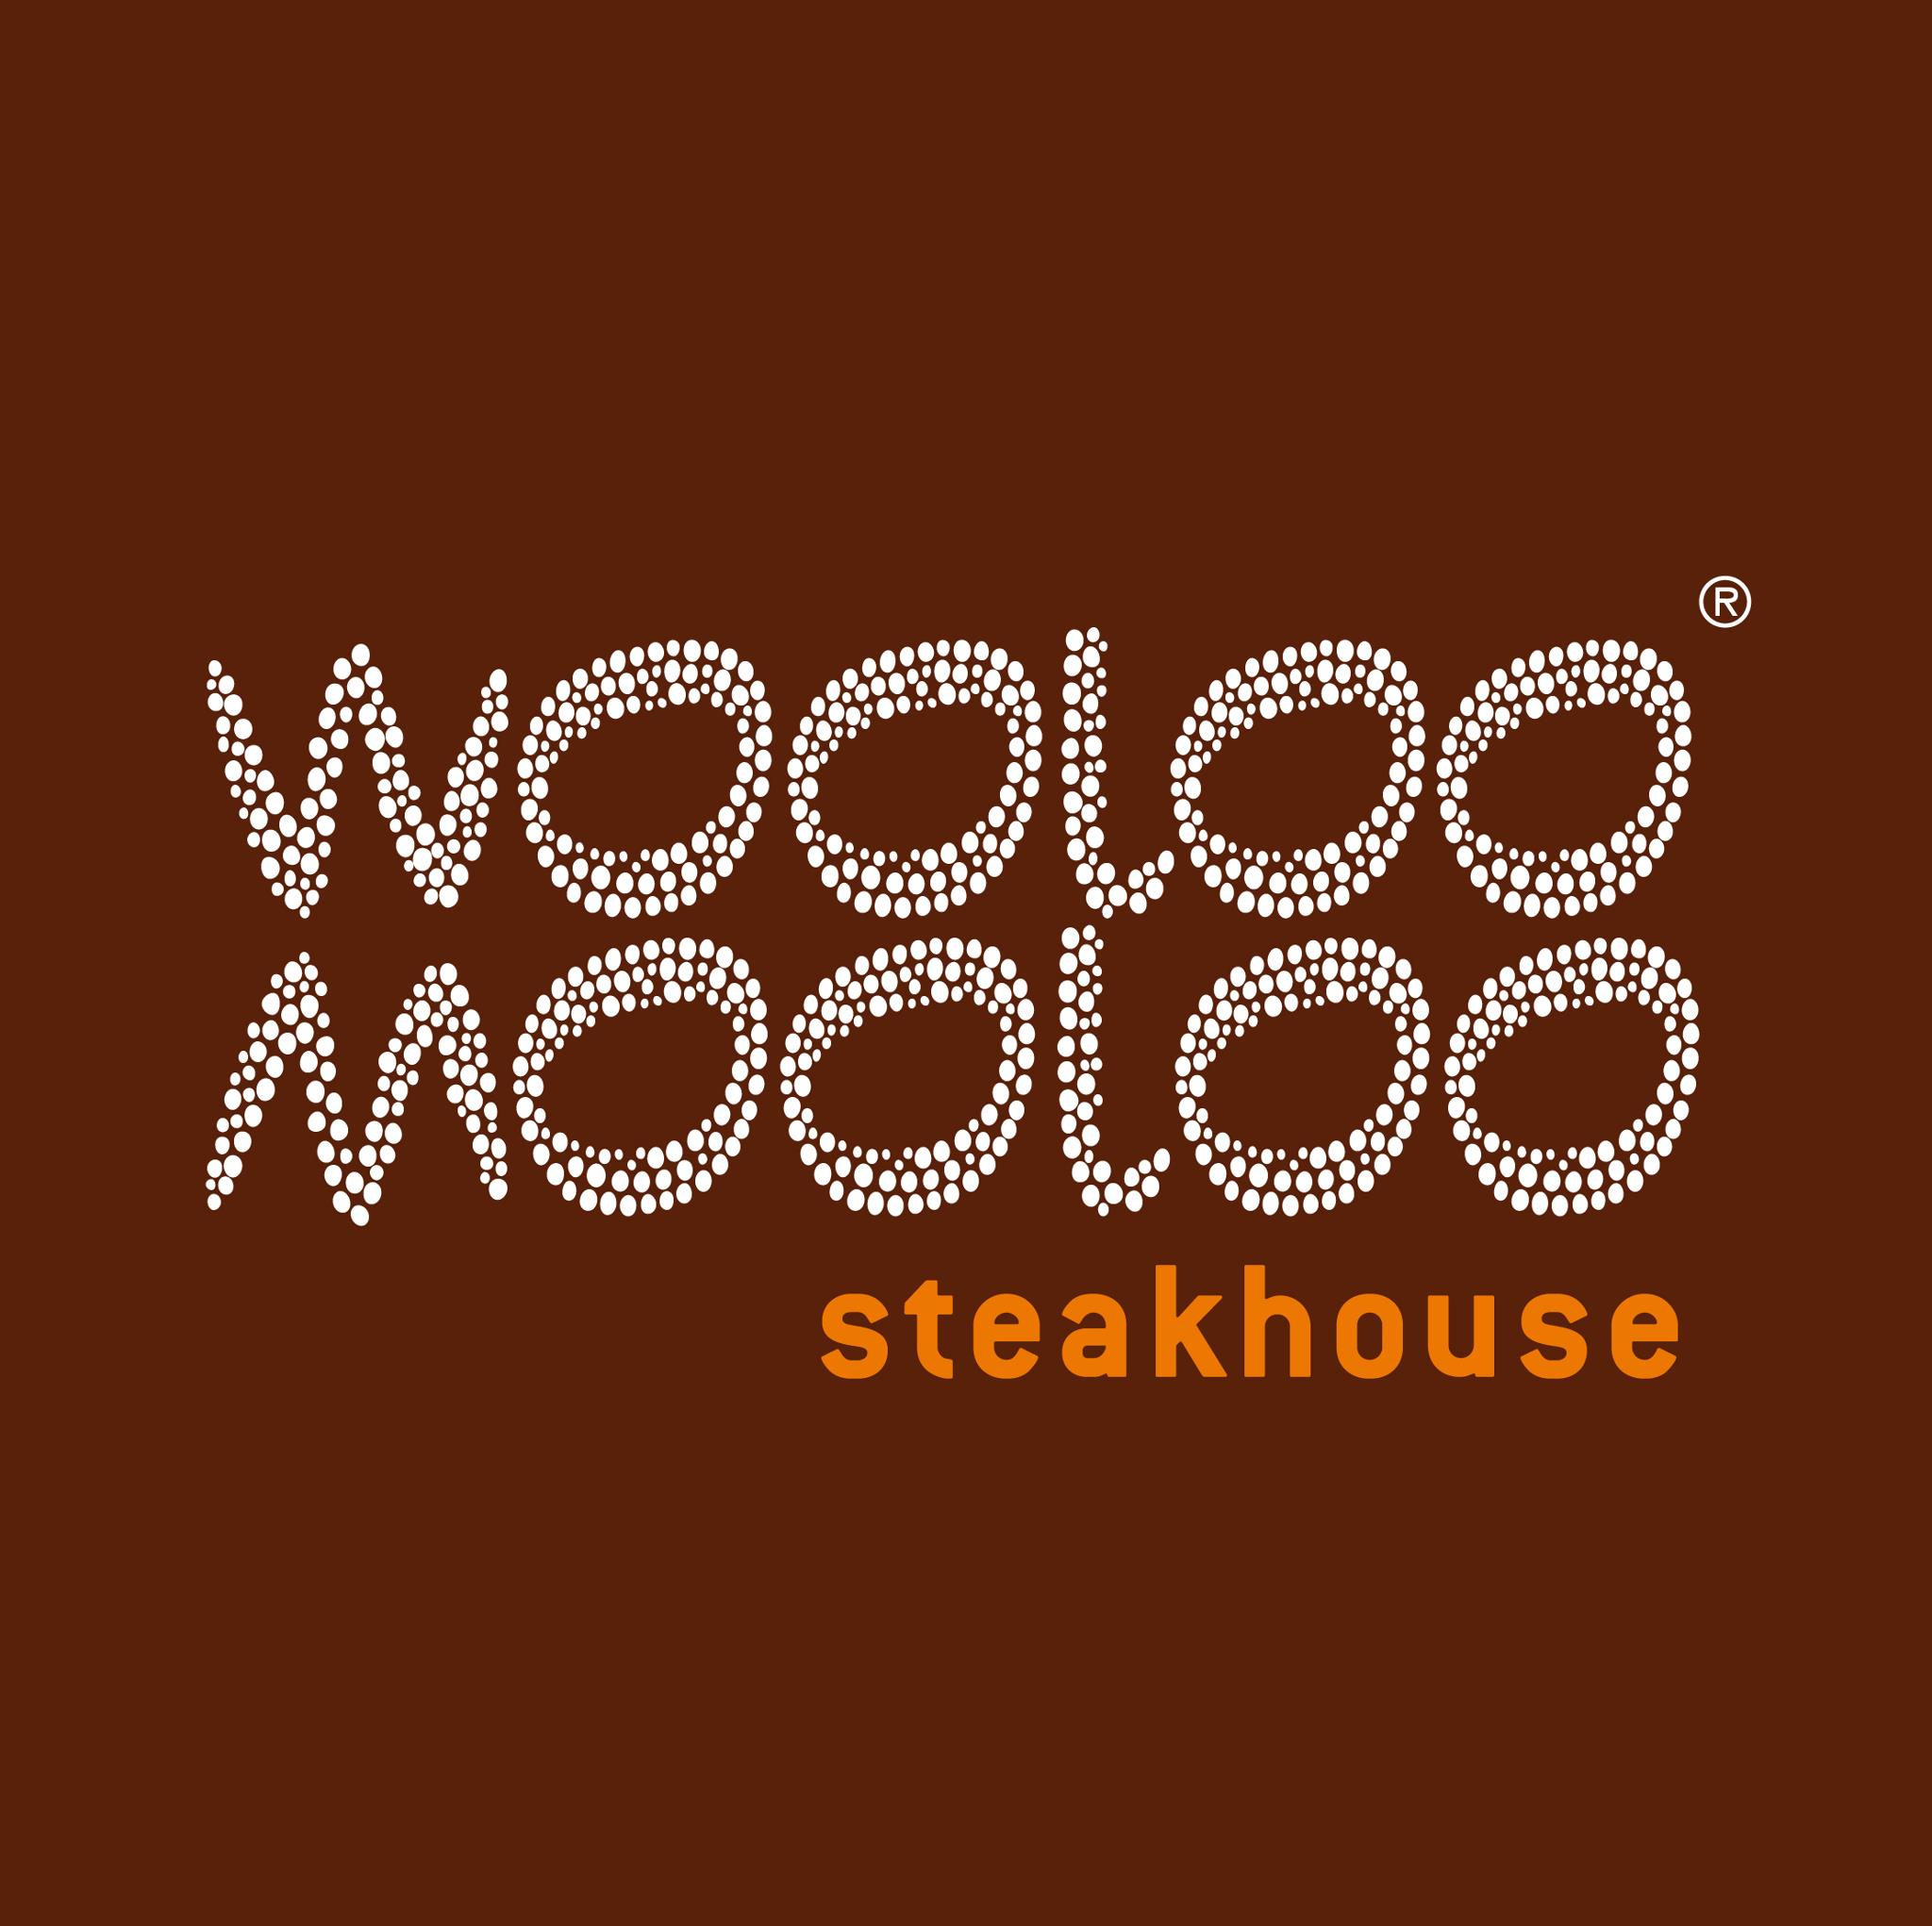 Wooloomooloo Steakhouse